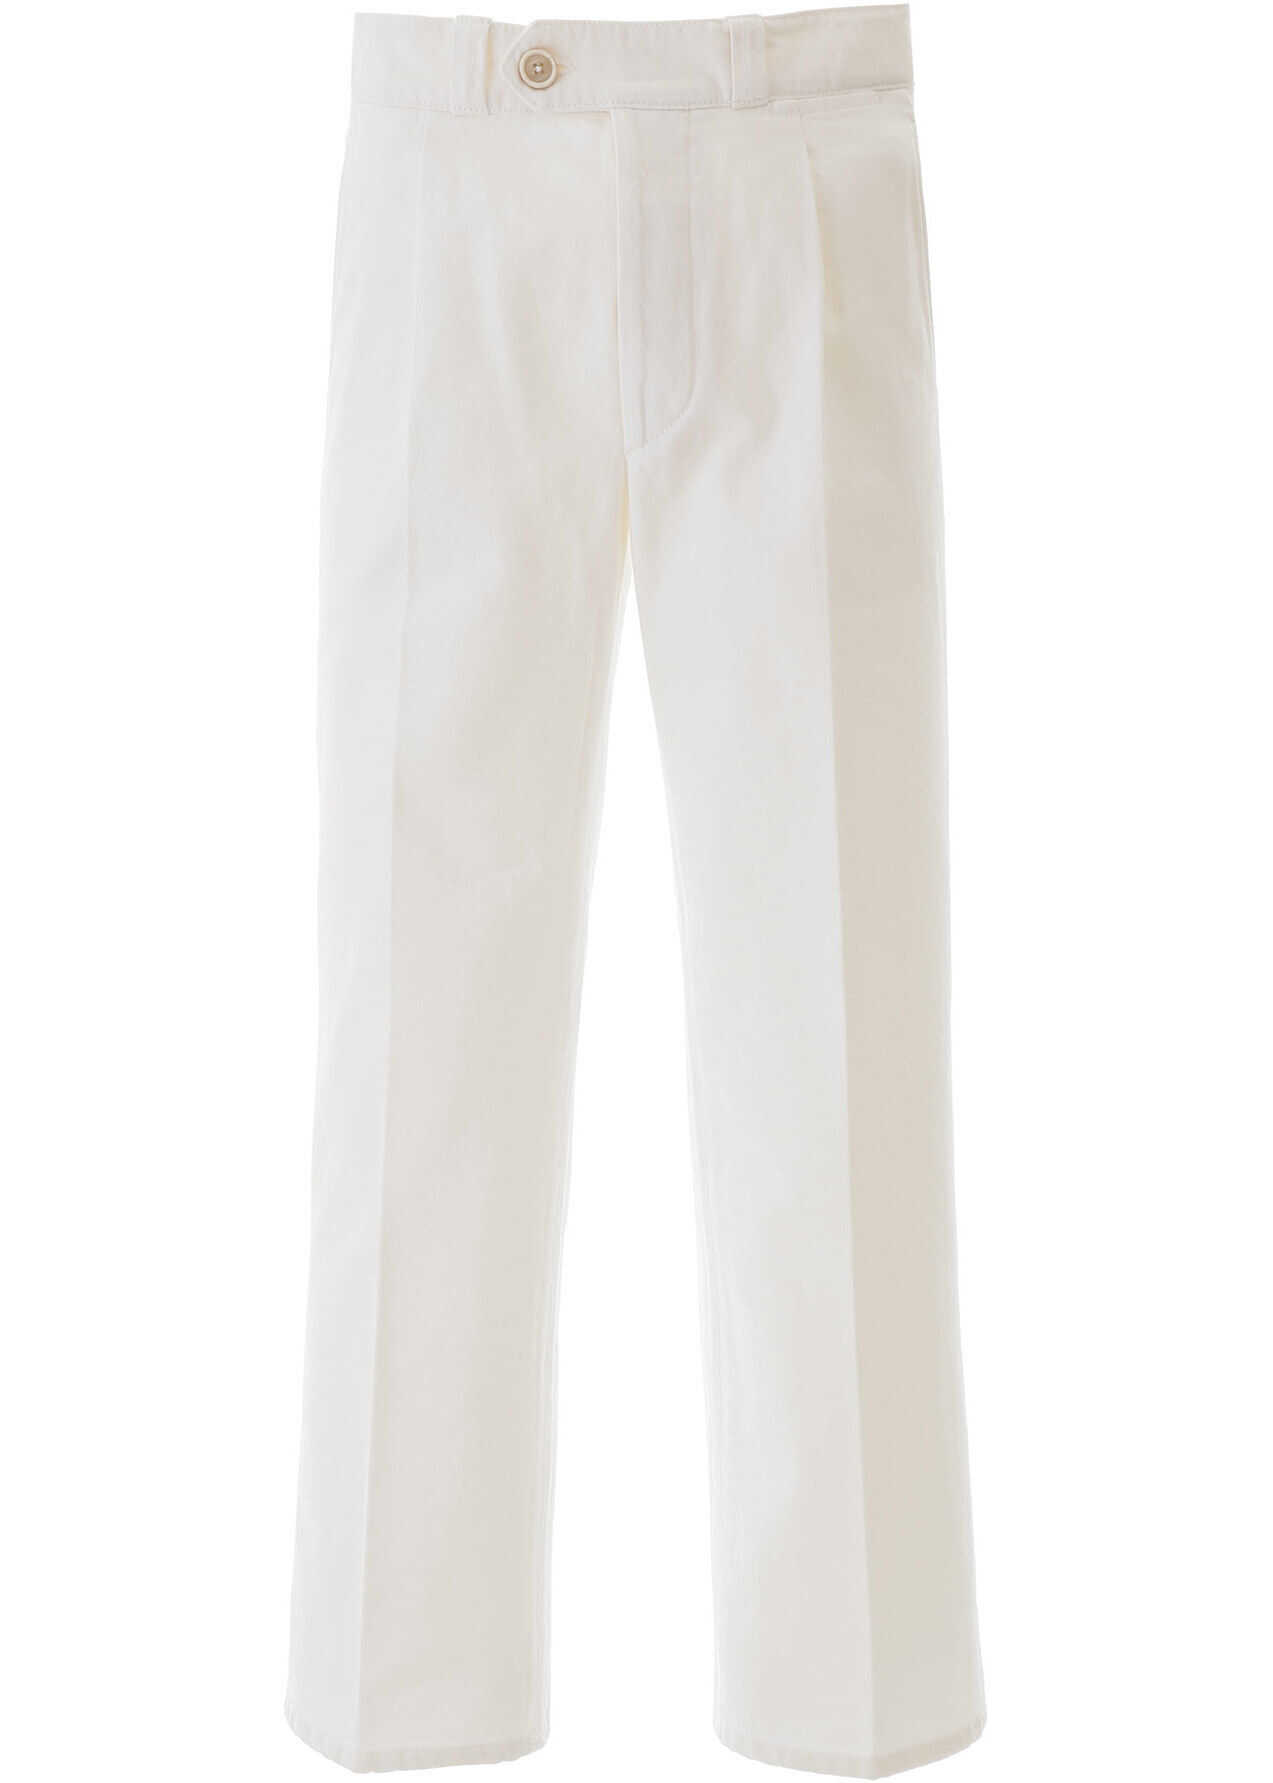 Prada Jeans With Front Pleats WHITE imagine